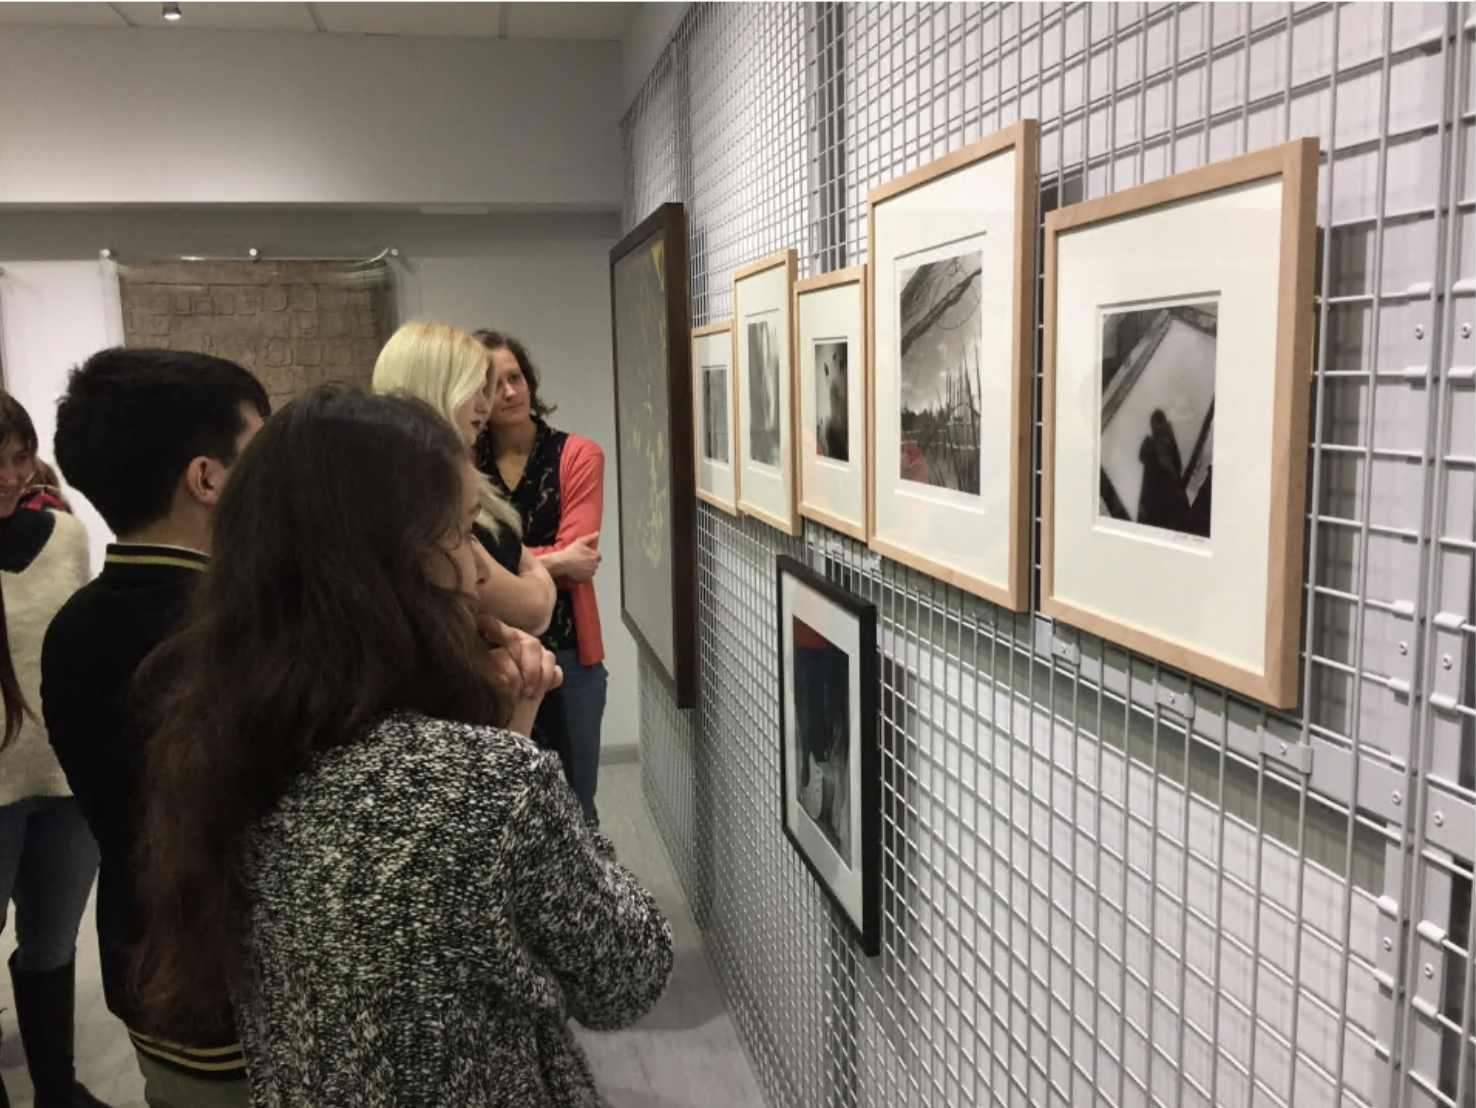 Students looking at artworks in ESCALA space